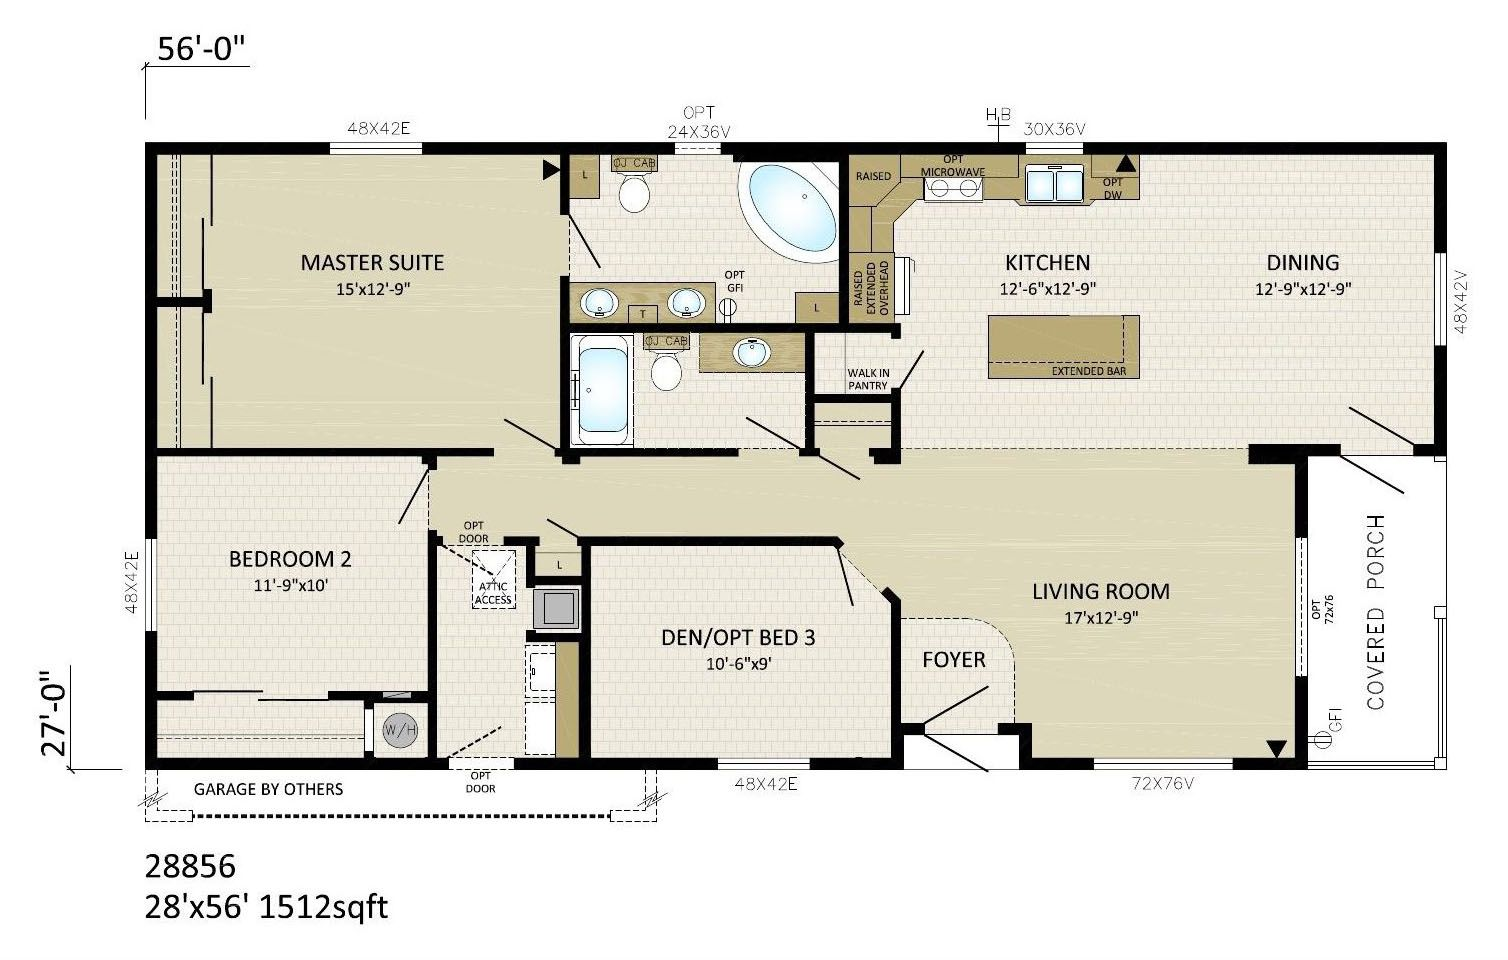 Floorplans Eagle Homes Mobile Modular Manufactured Prefabricated Homes In Bc Modular Home Plans Floor Plans Prefabricated Houses